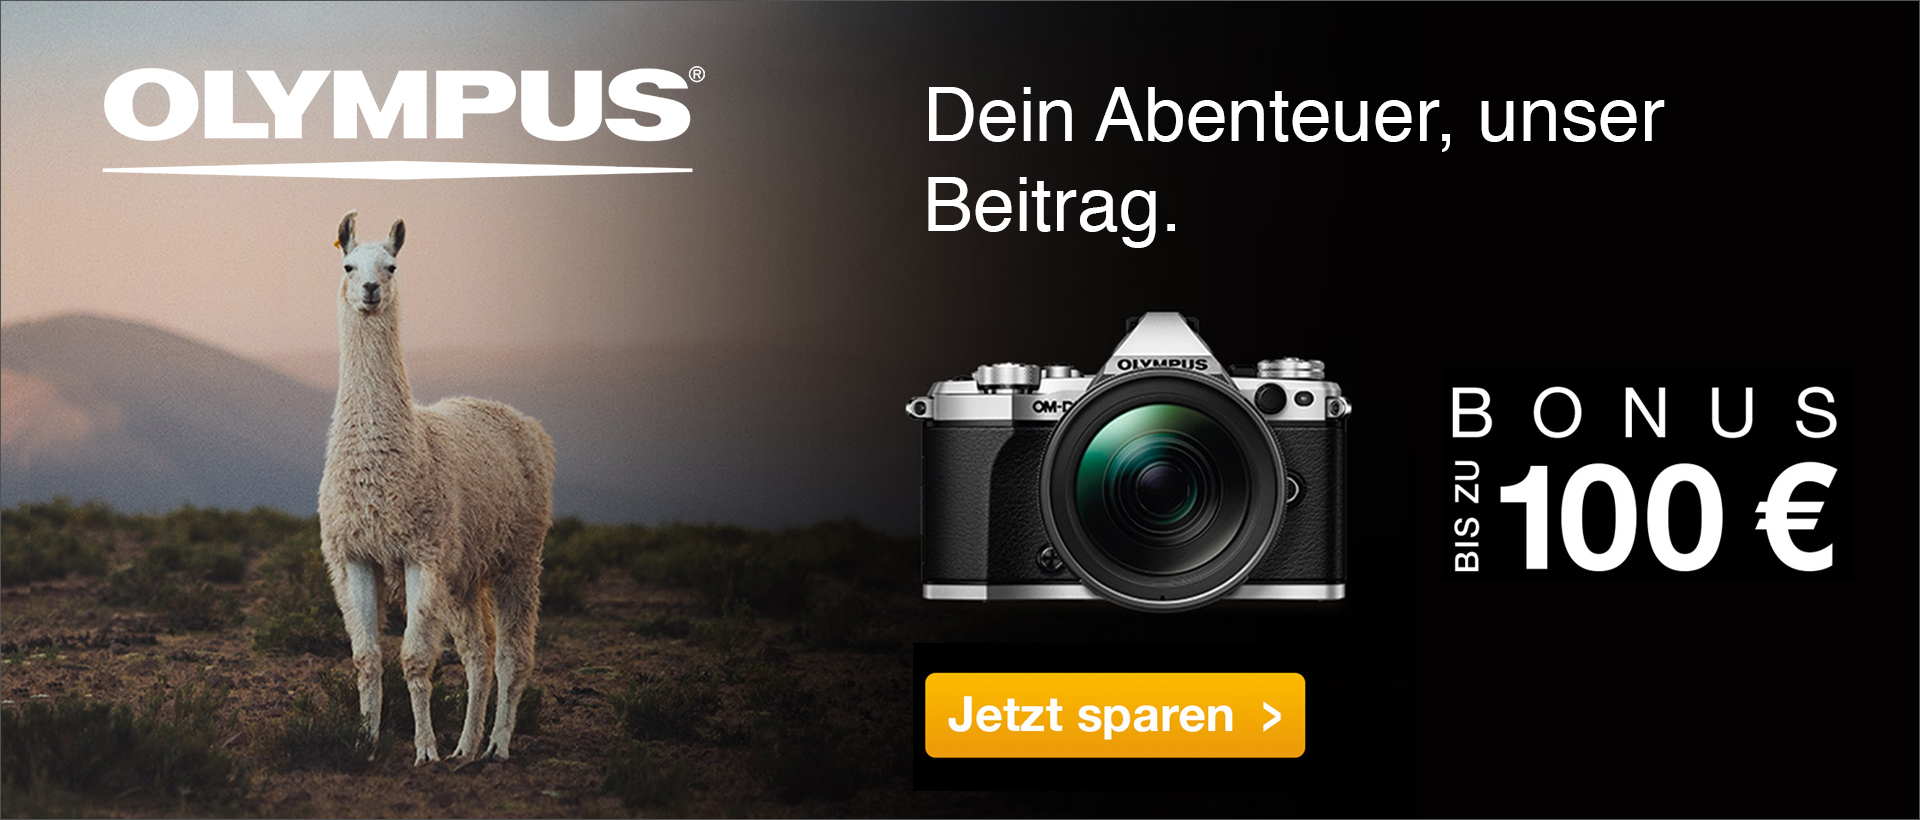 Olympus Herbst Promotion 2018